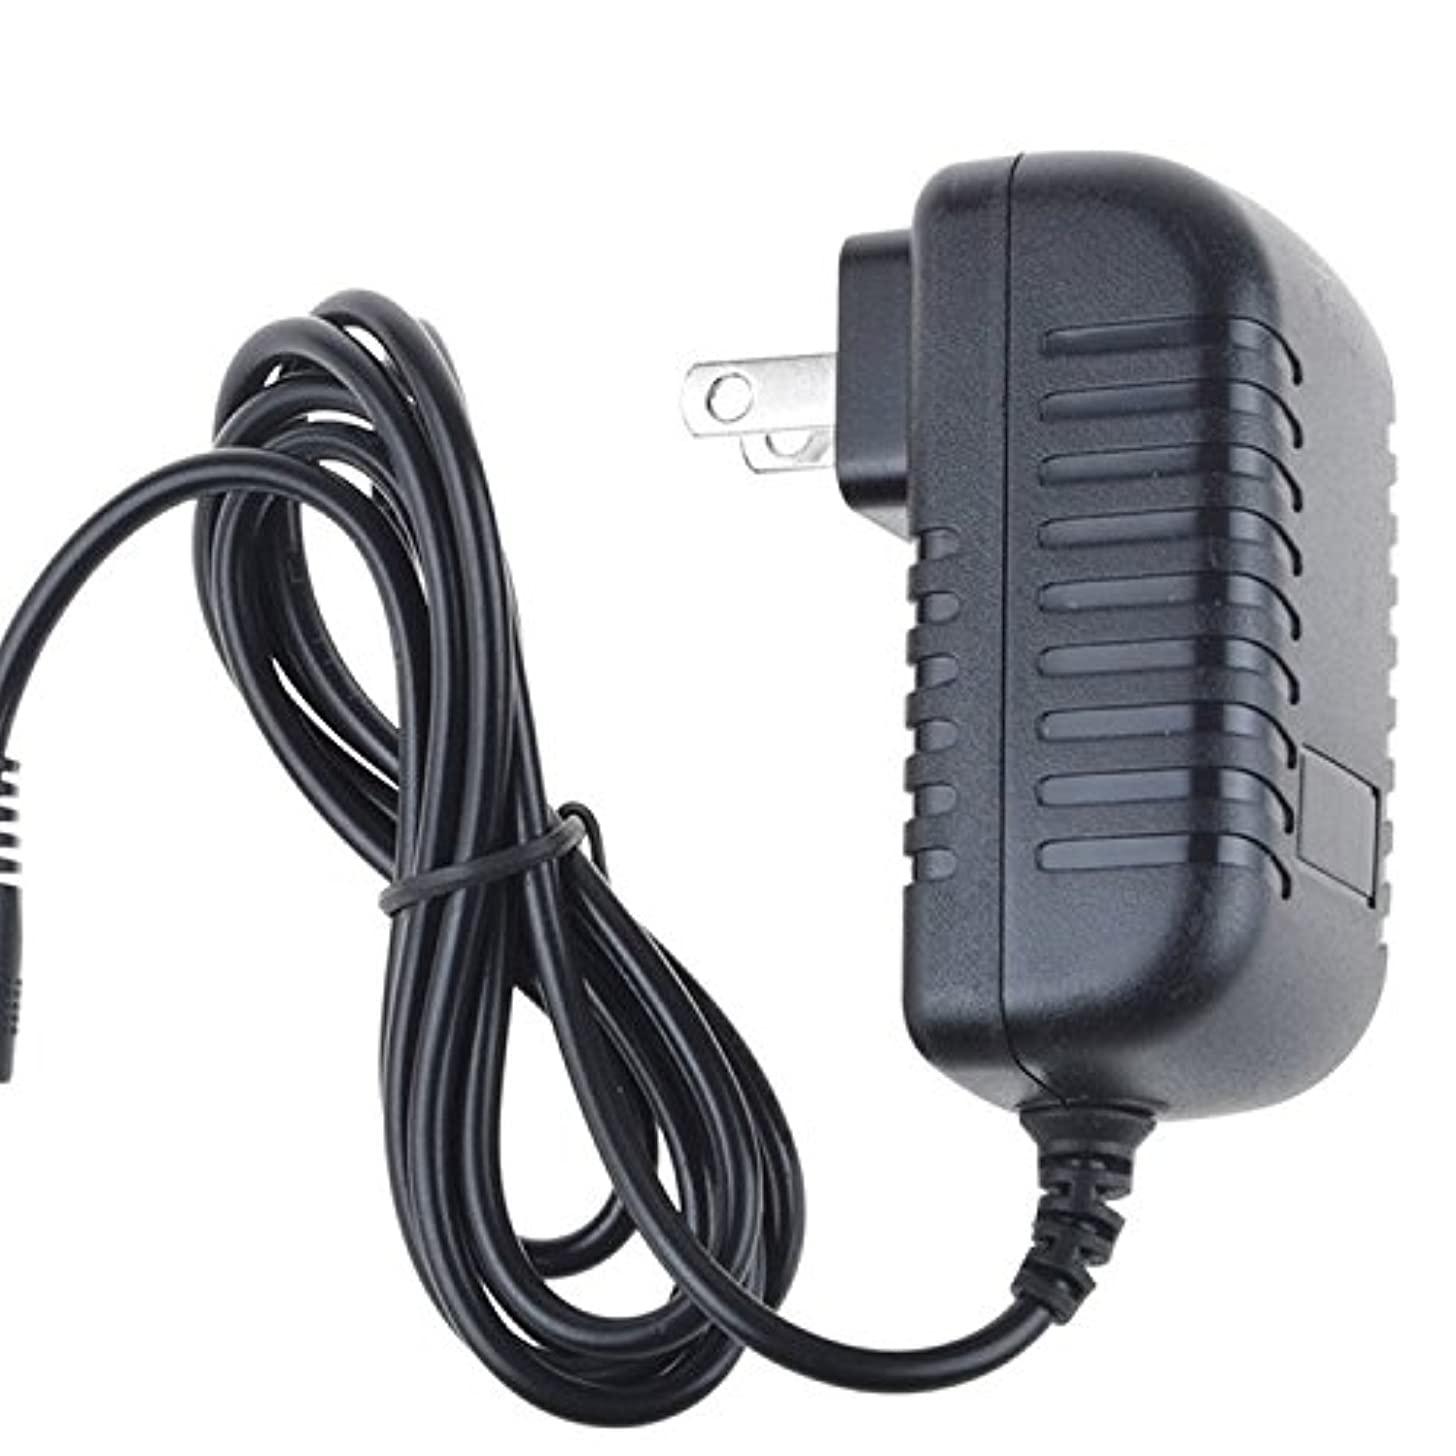 AT LCC AC/DC Adapter for Motorola Baby Monitor MBP35L Digital Video MBP35BL Thermometer Power Supply Cord Cable PS Wall Home Charger